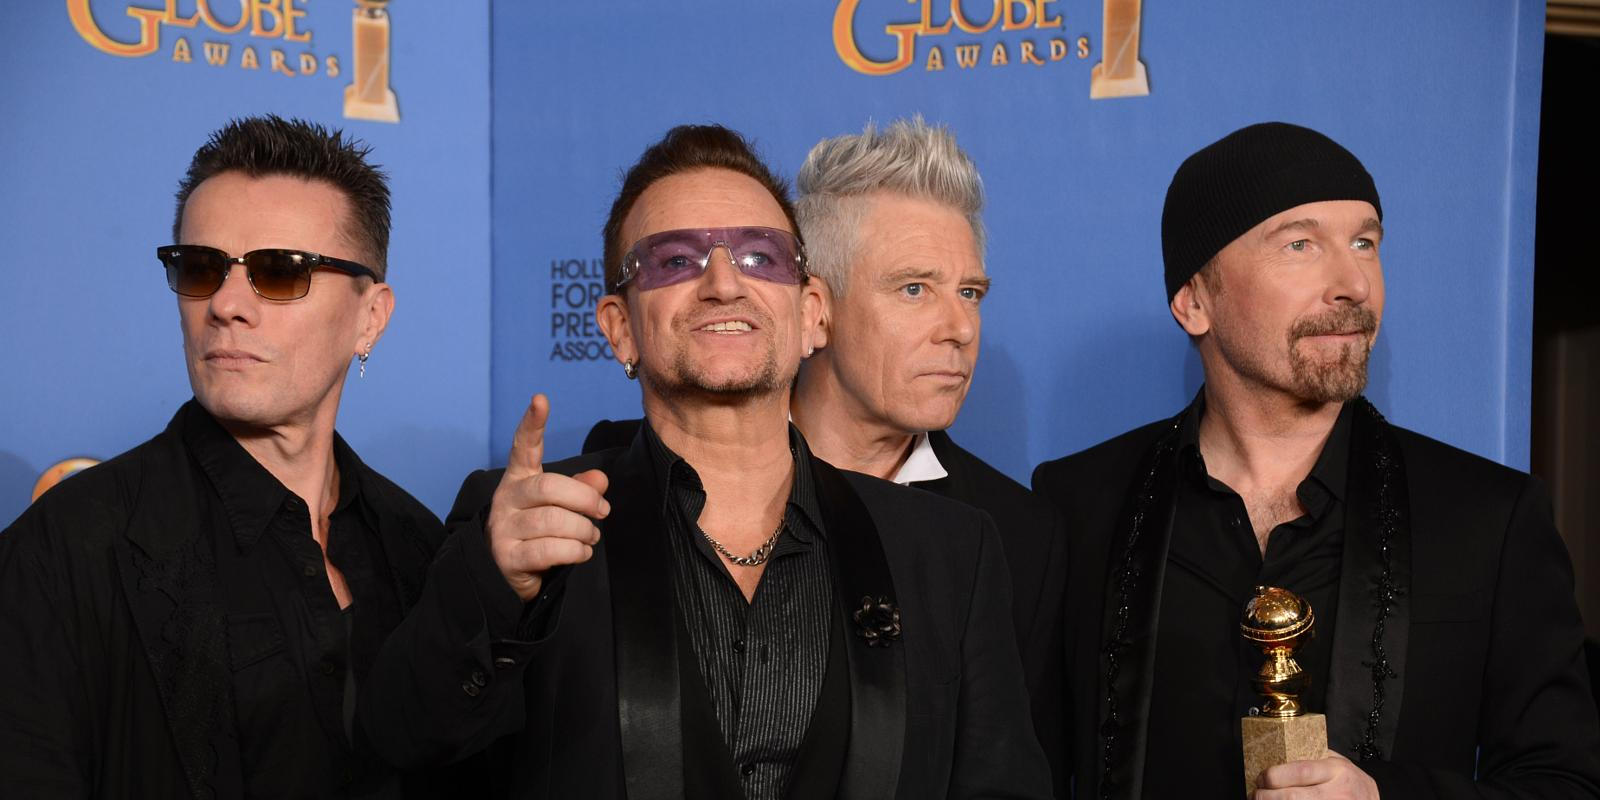 U2 might play their first ever concert in Singapore next year